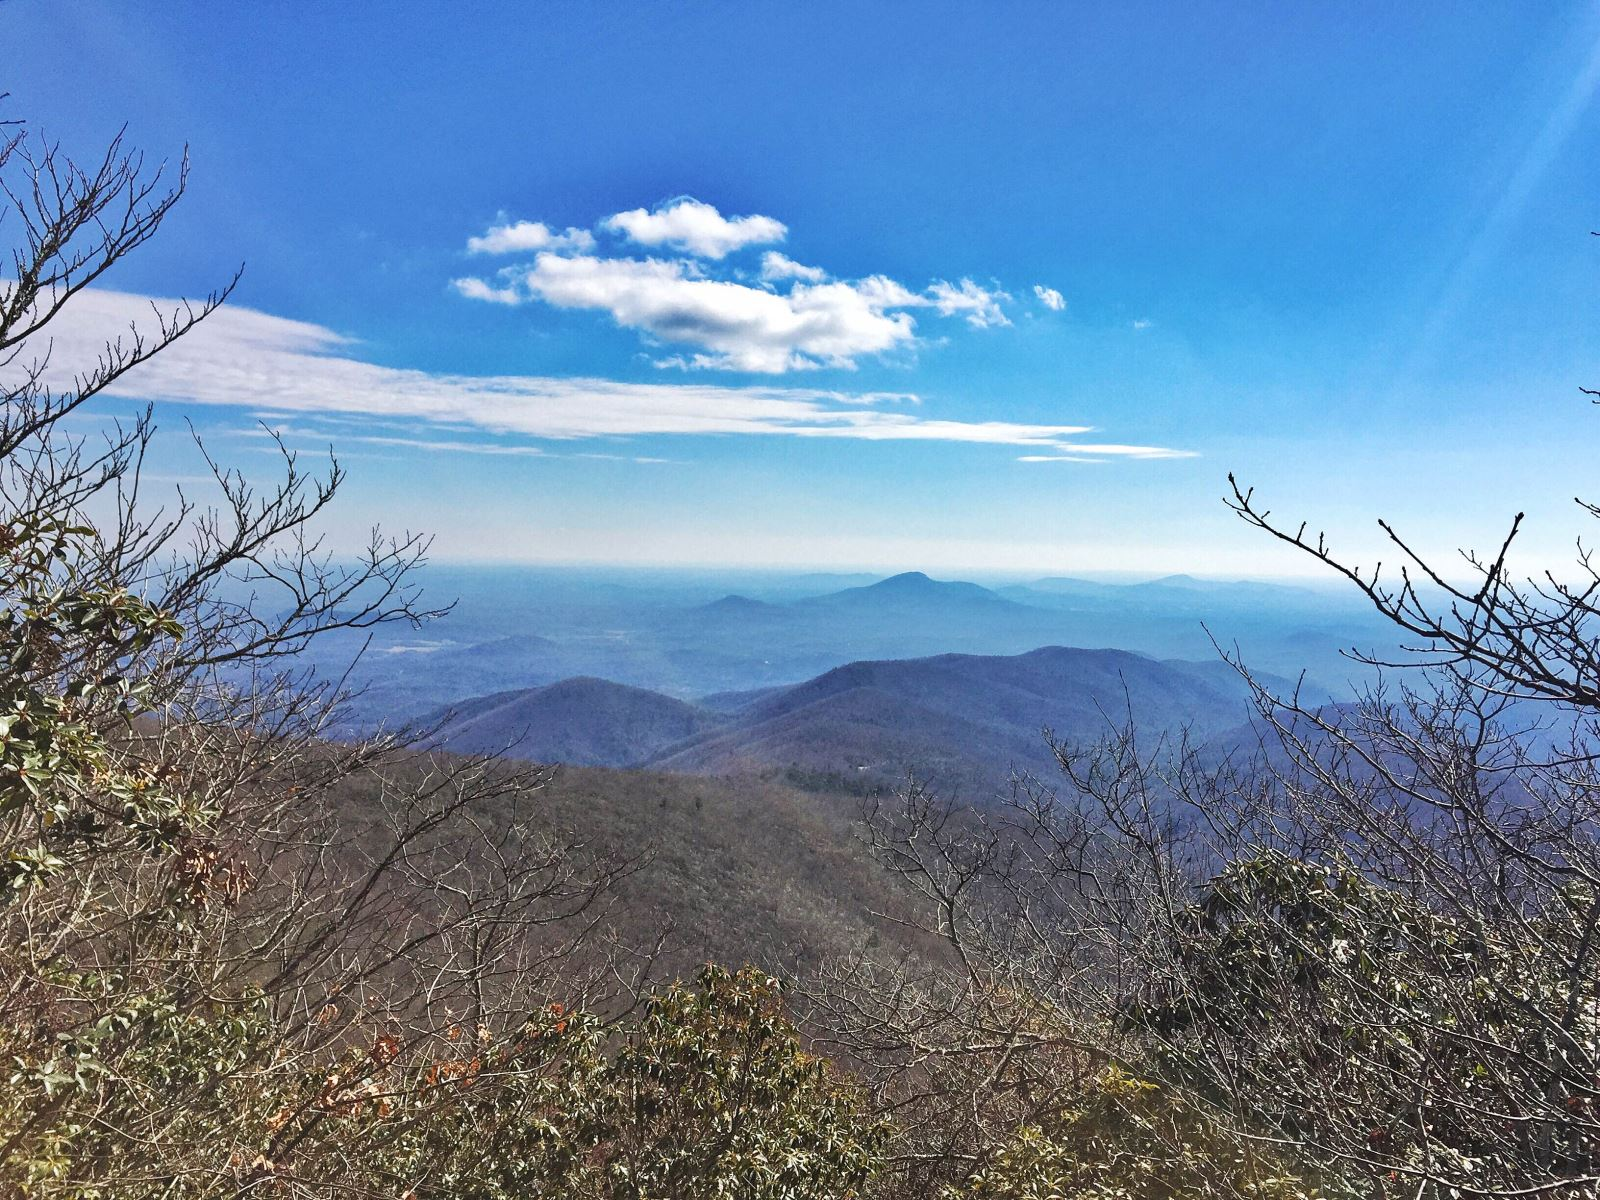 View from the summit on Tray Mountain Rd